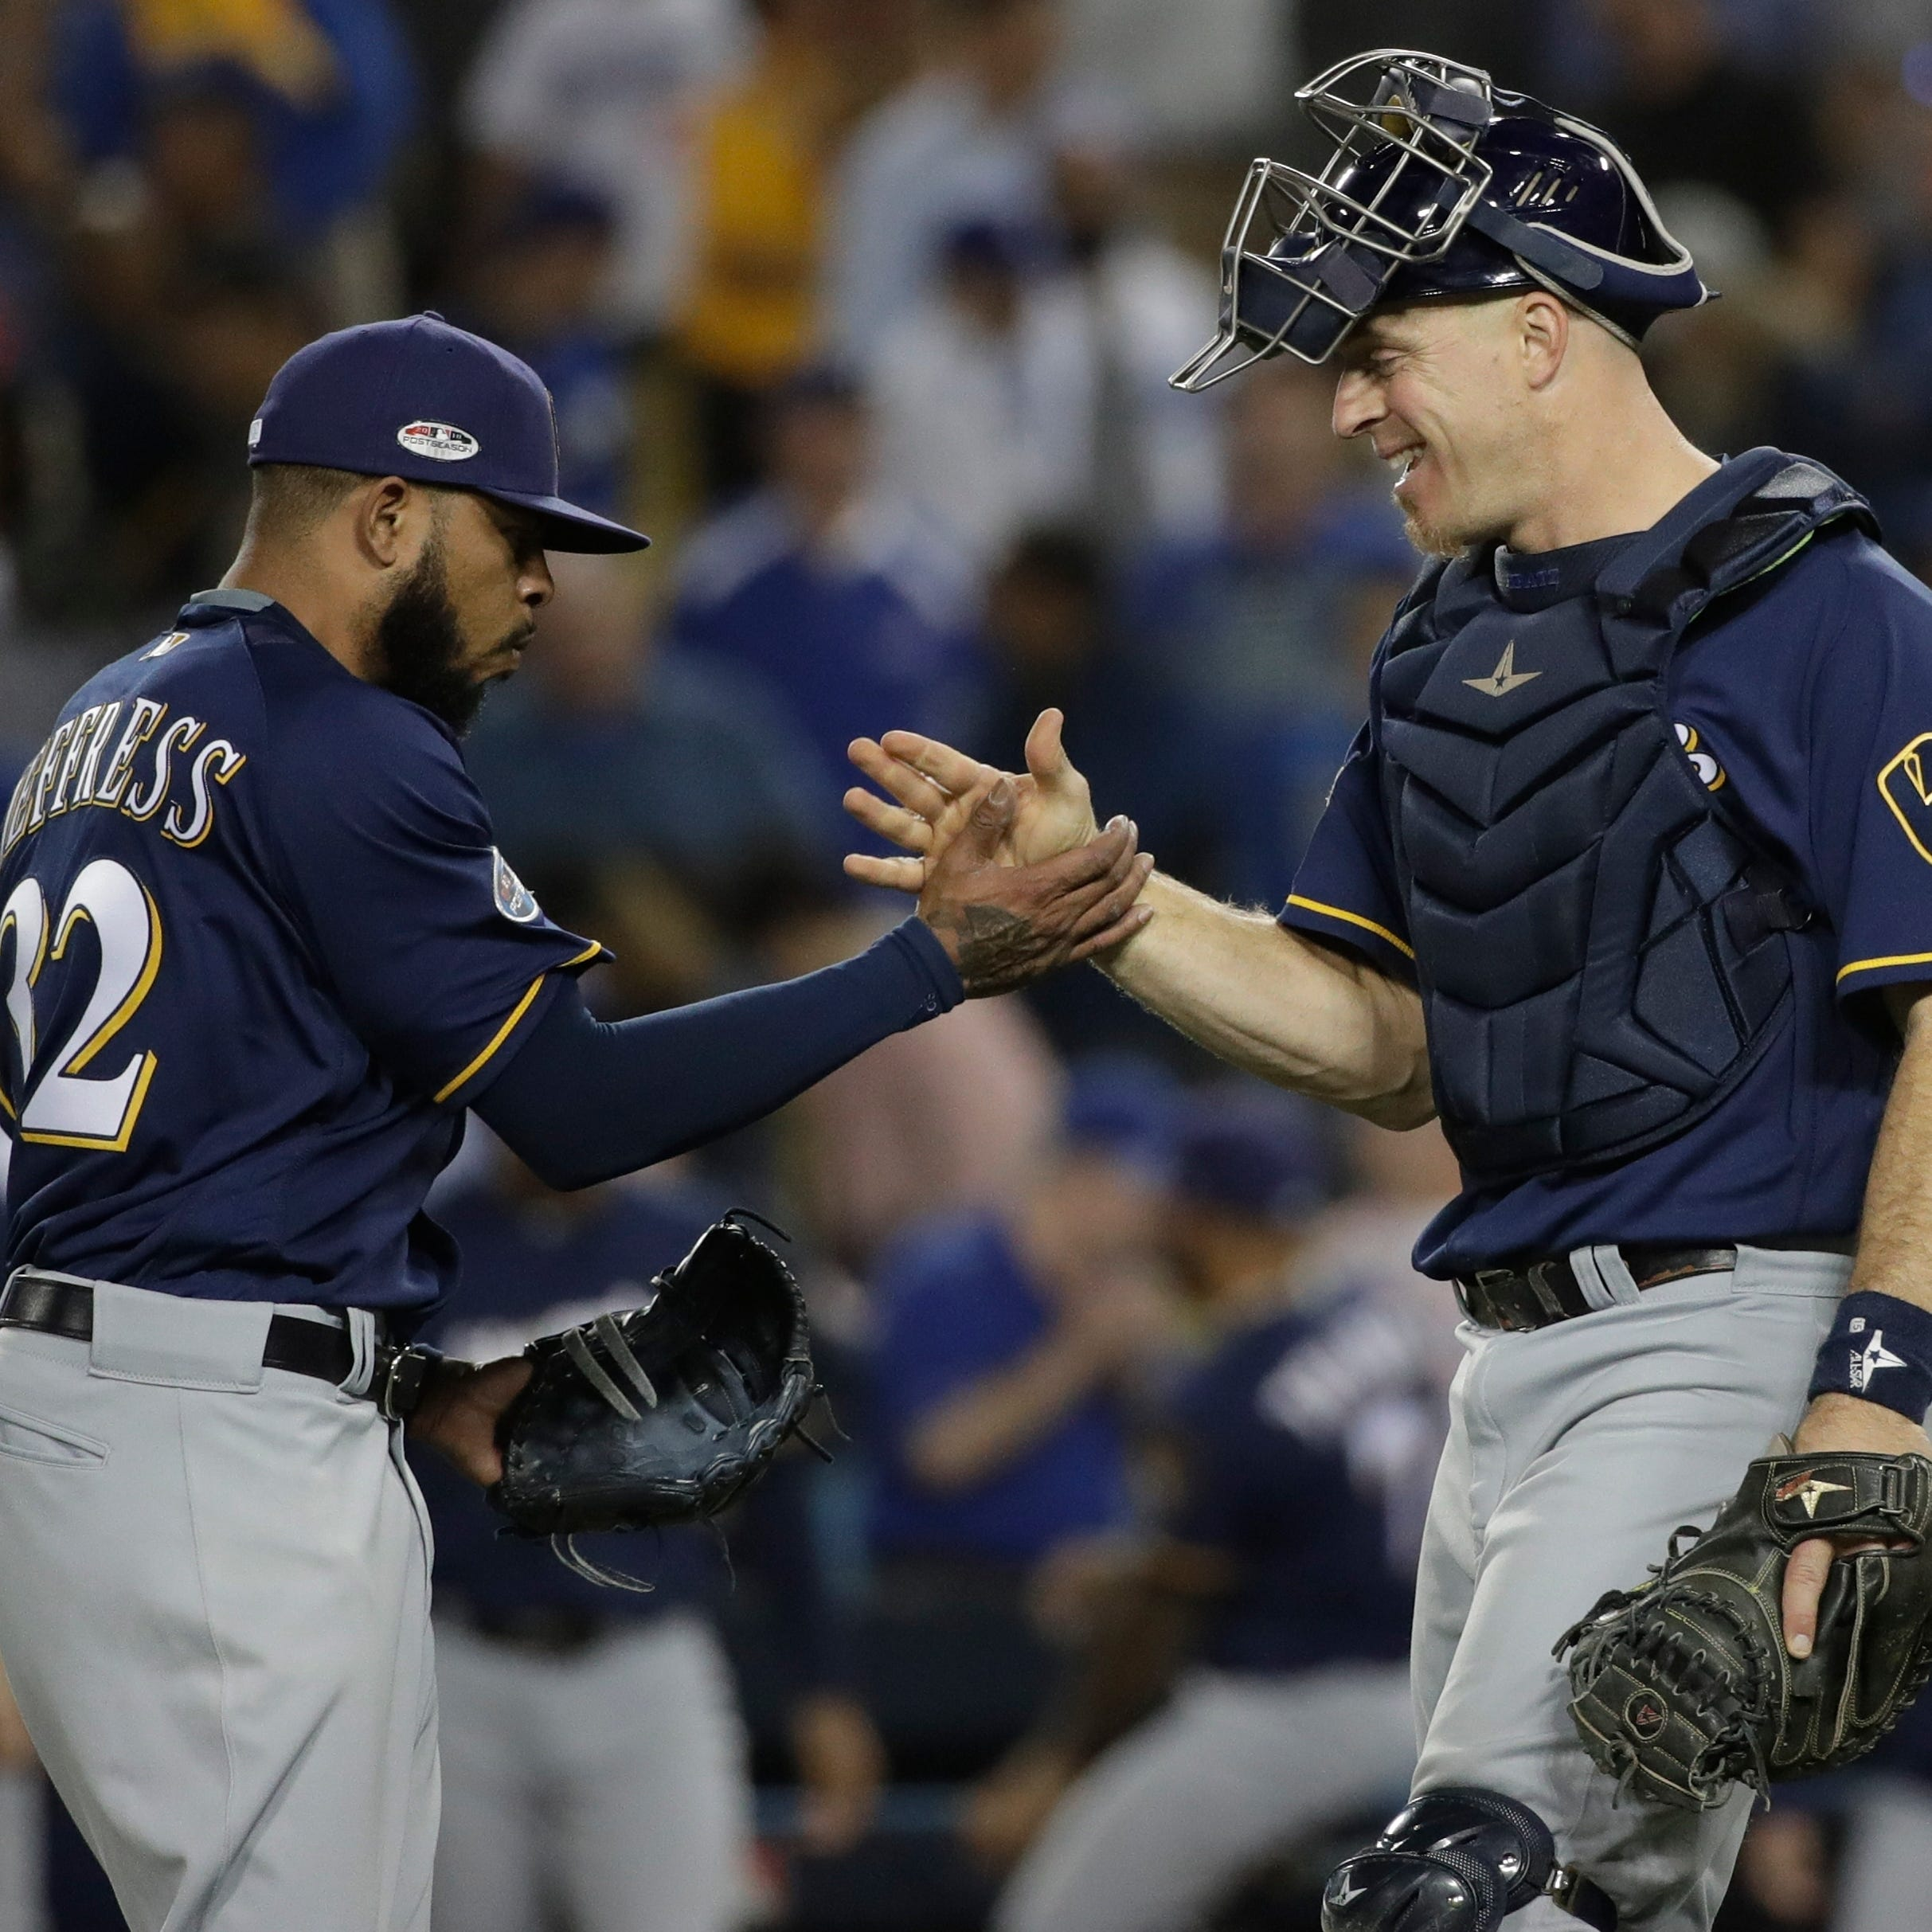 Here's another reason to love Brewers catcher Erik Kratz: an intentional face-plant during a pregame intro